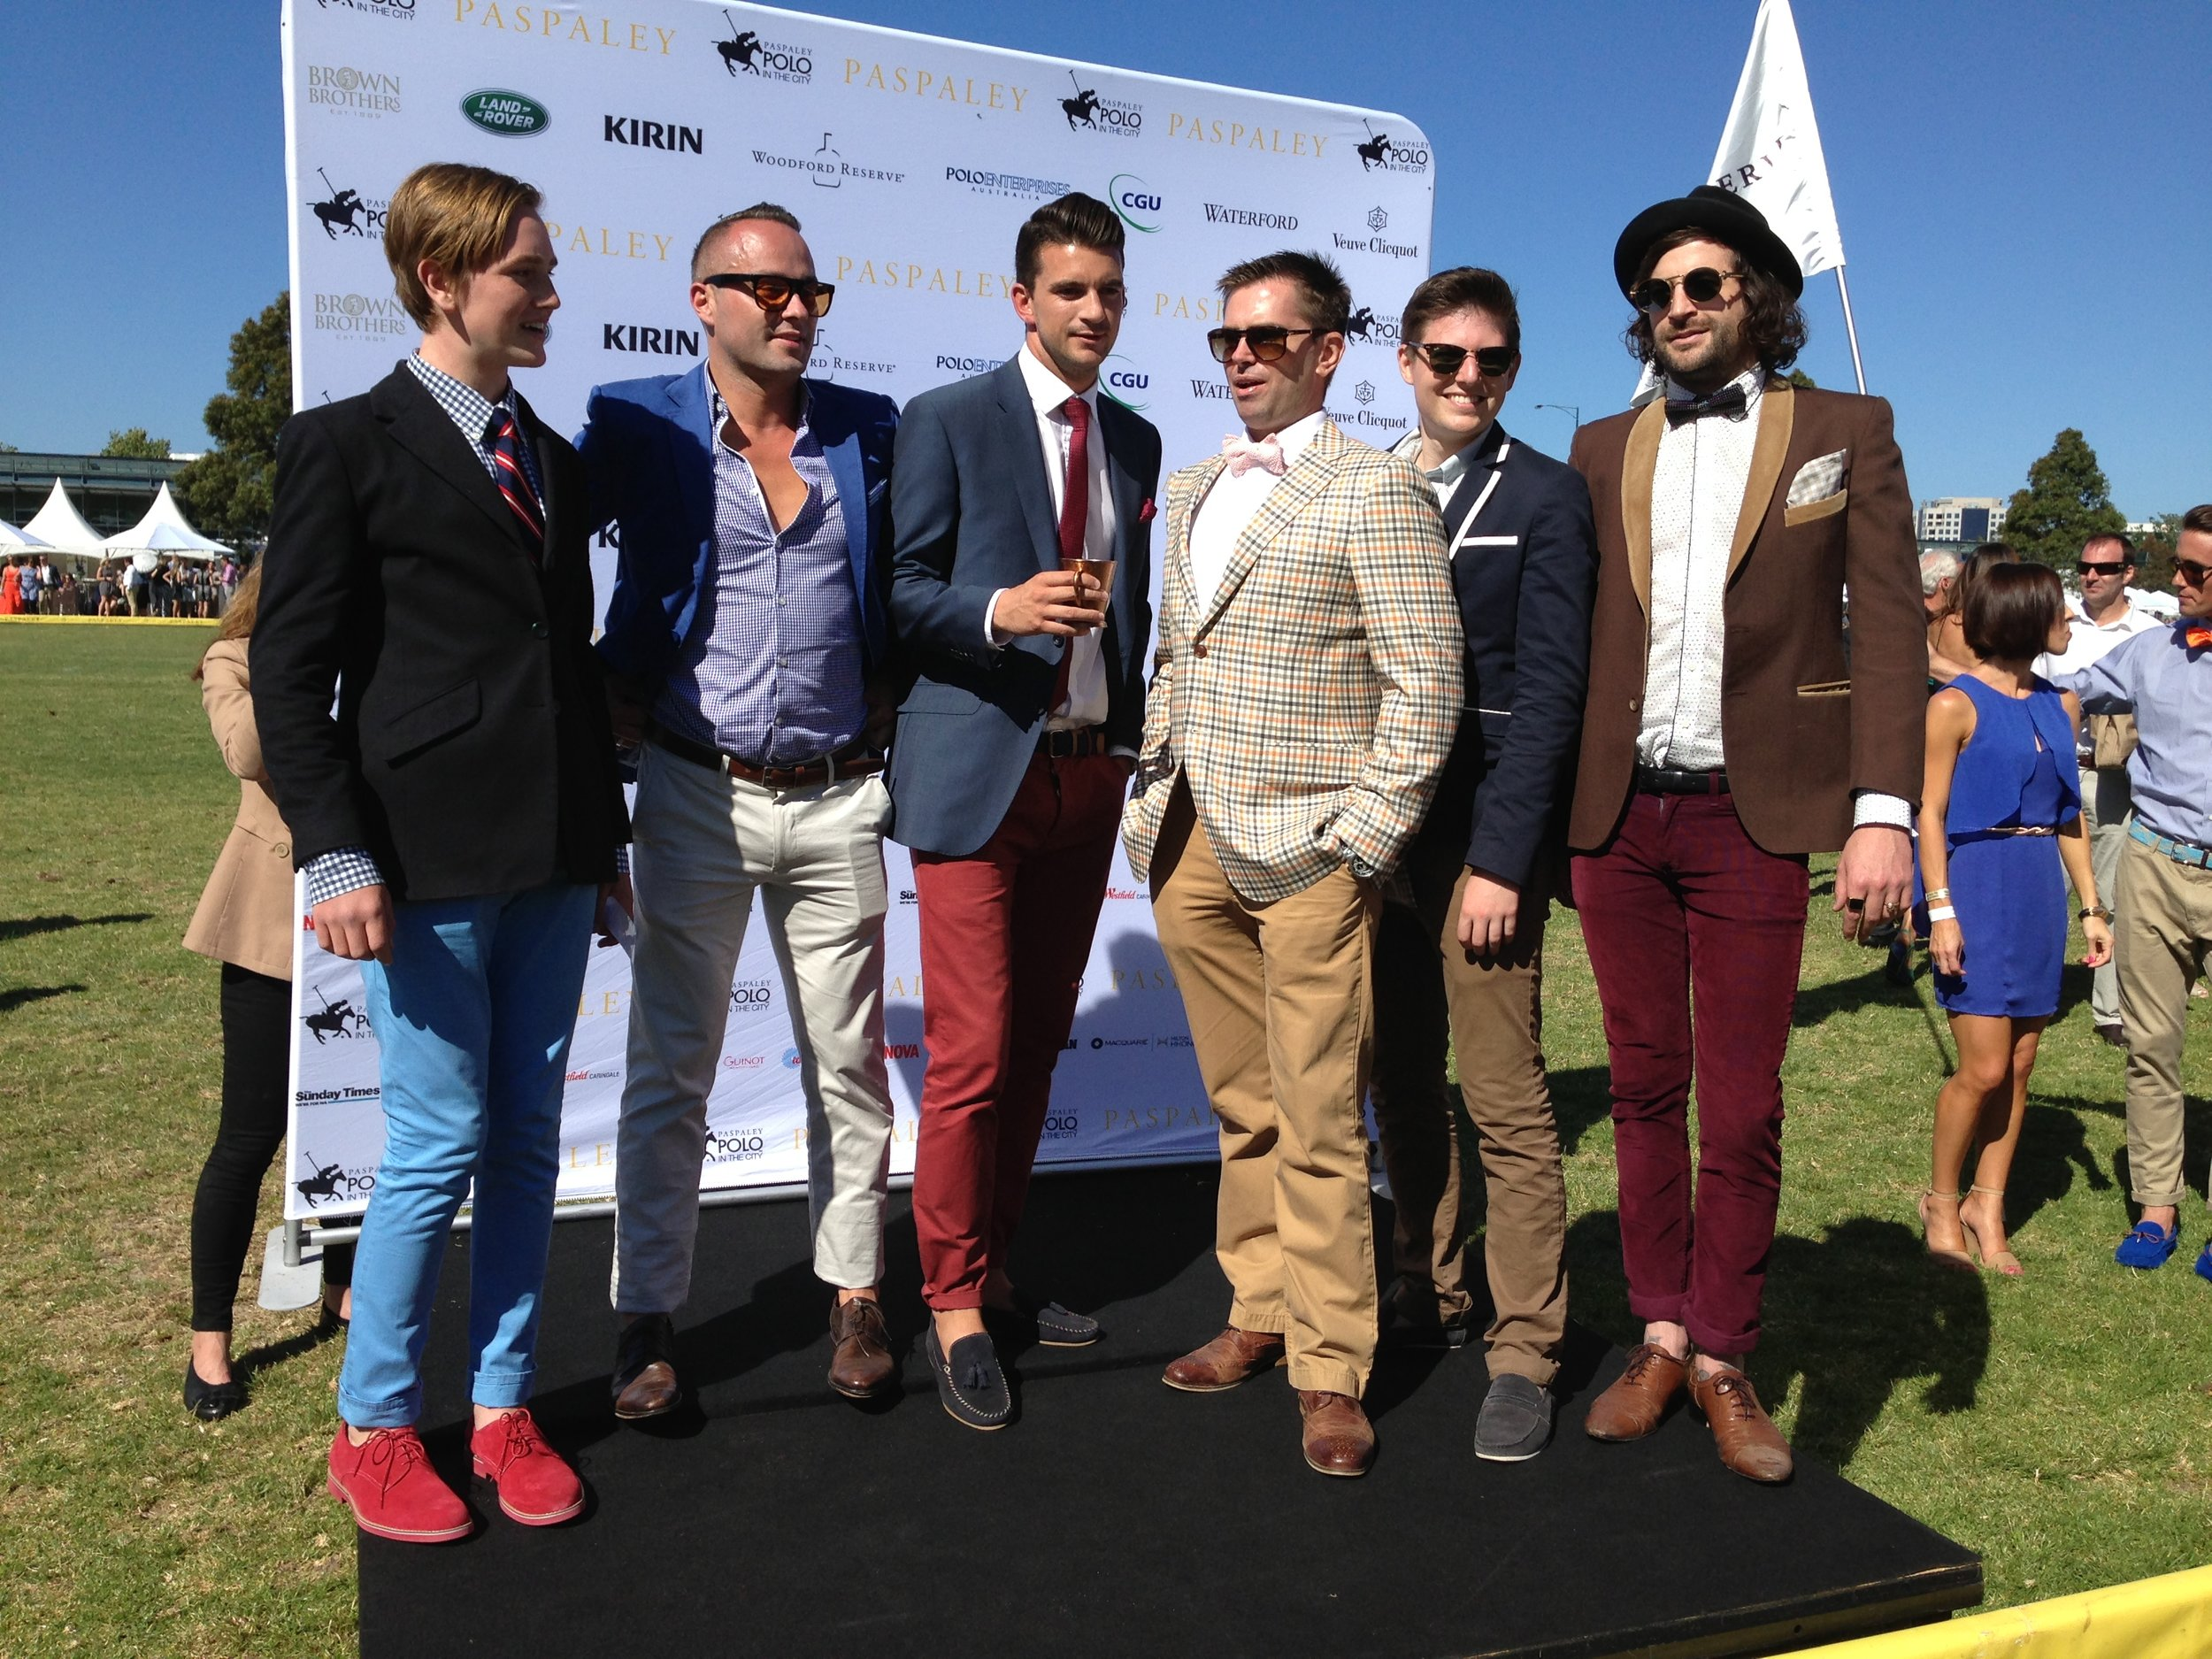 The Men in FOTF, winner in the middle in the blue blazer and red pants